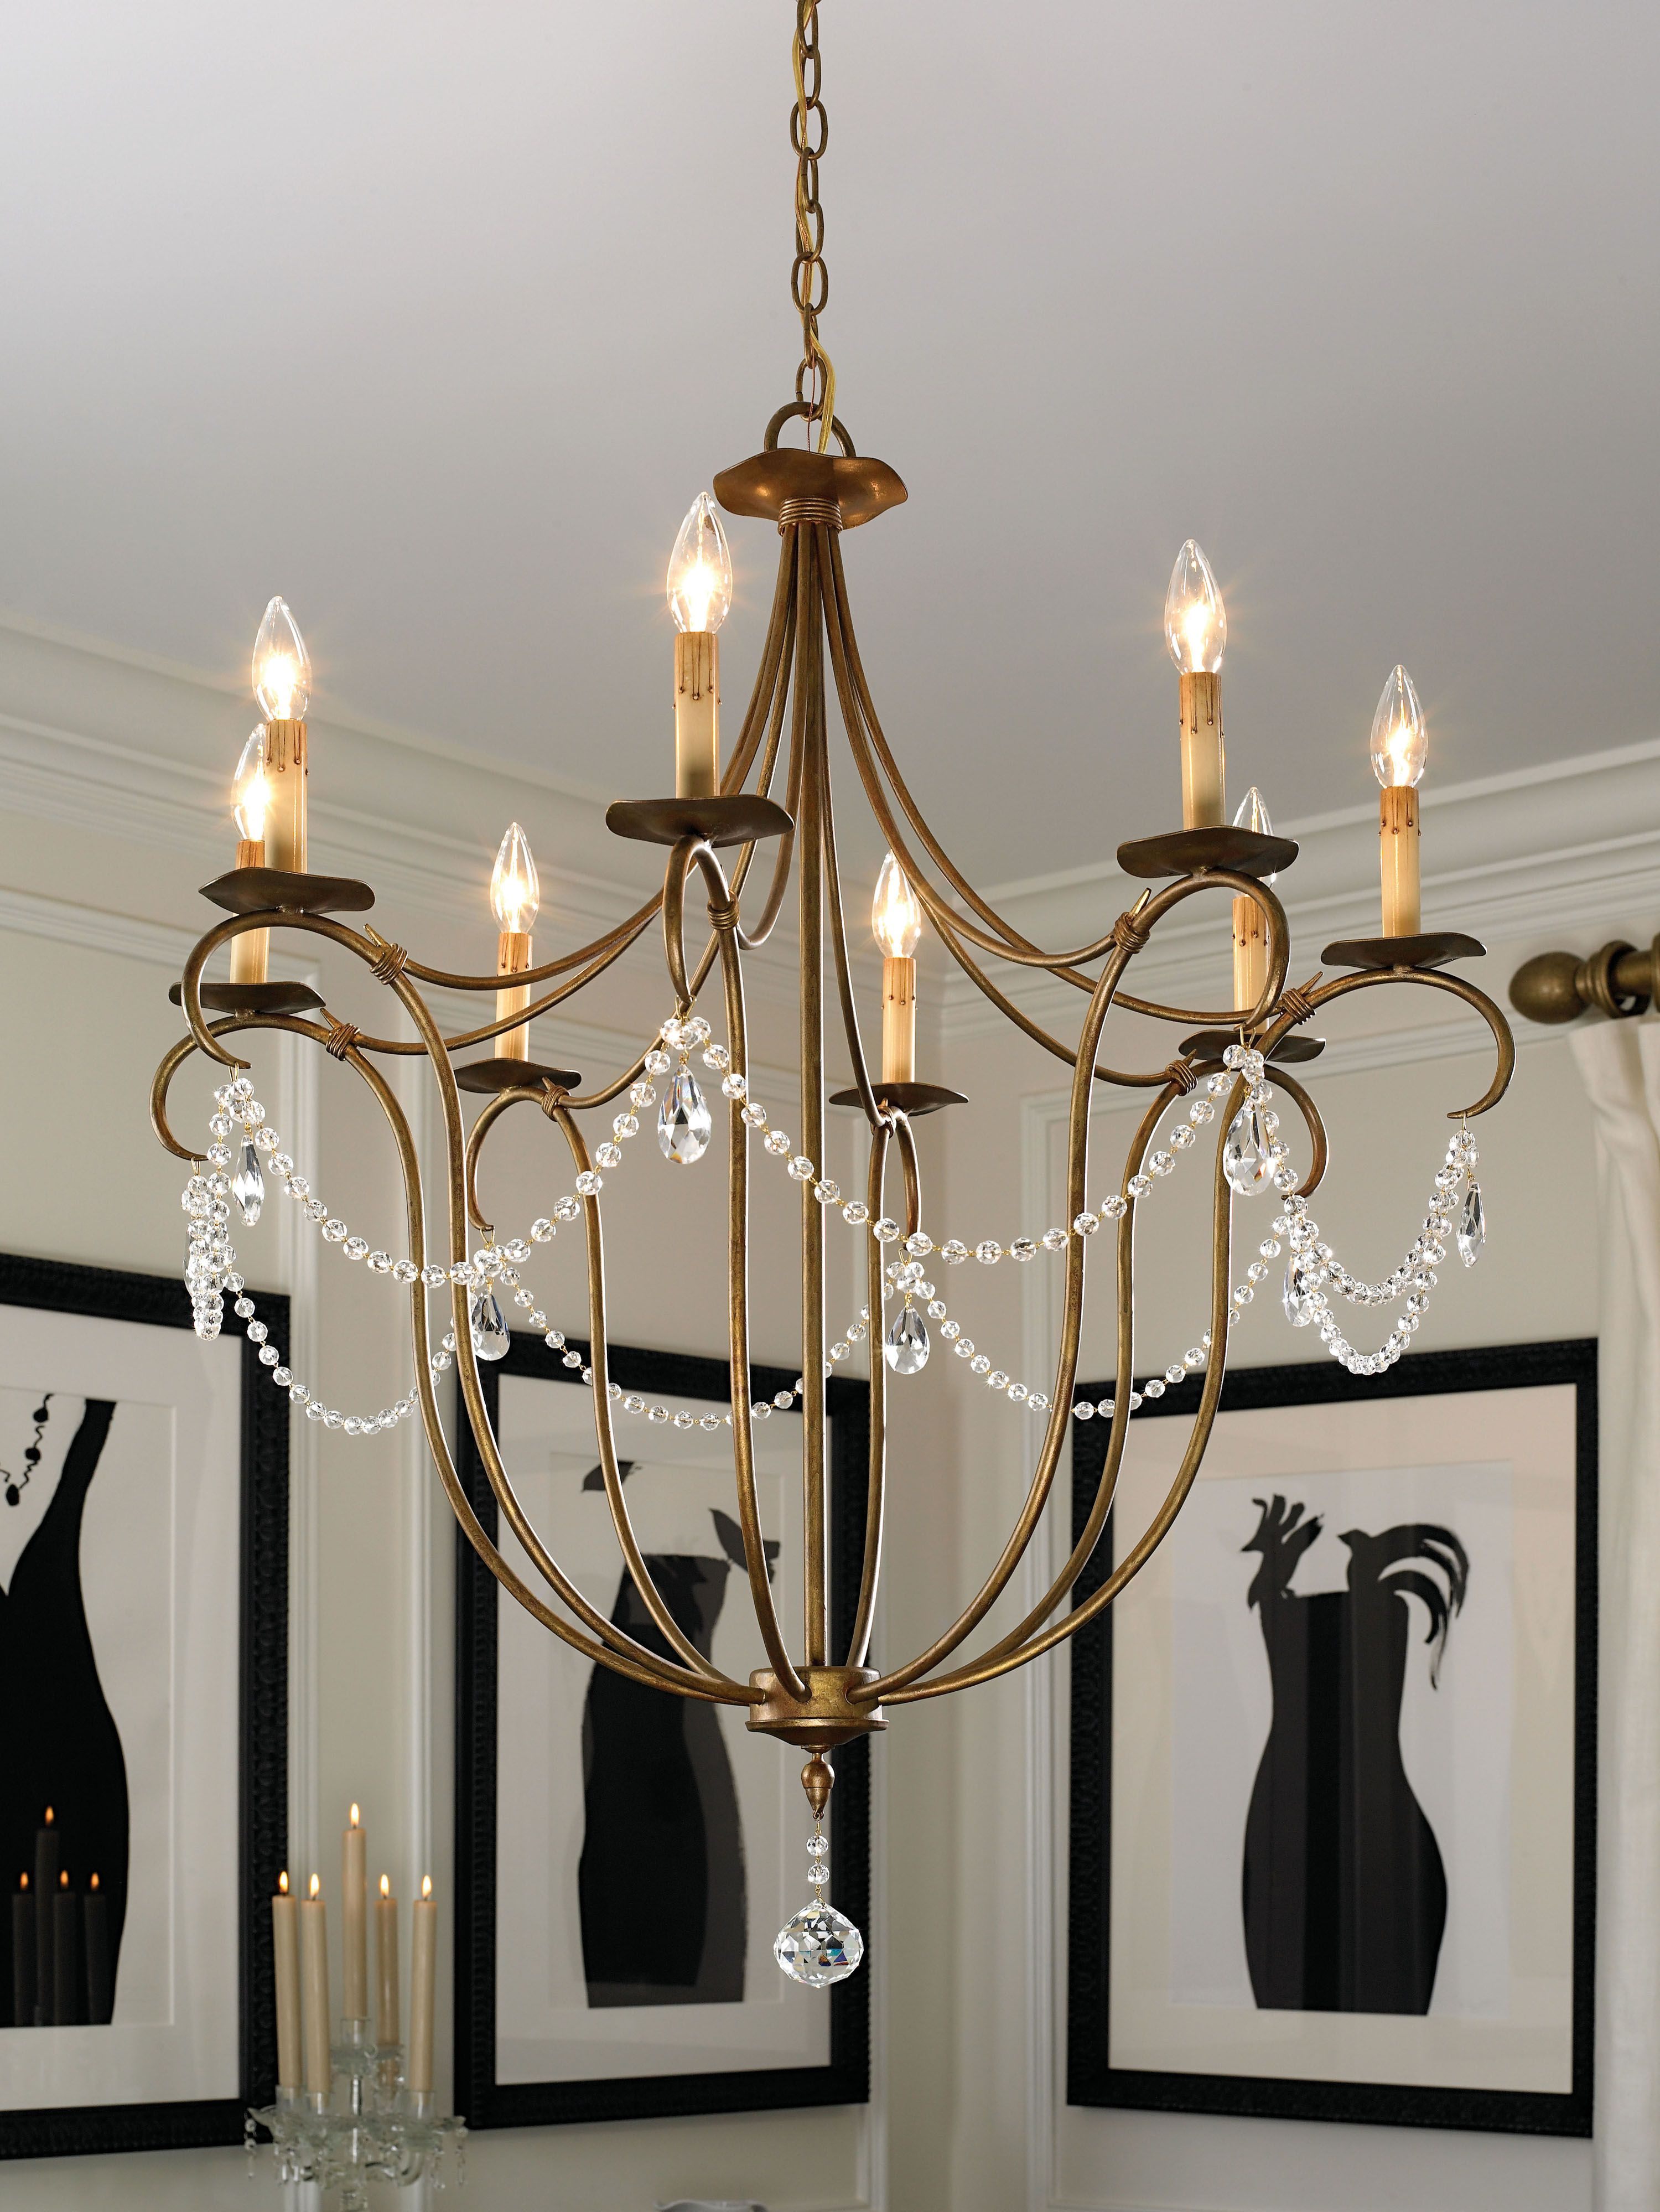 This Currey Company Chandelier Has Perfect Proportions